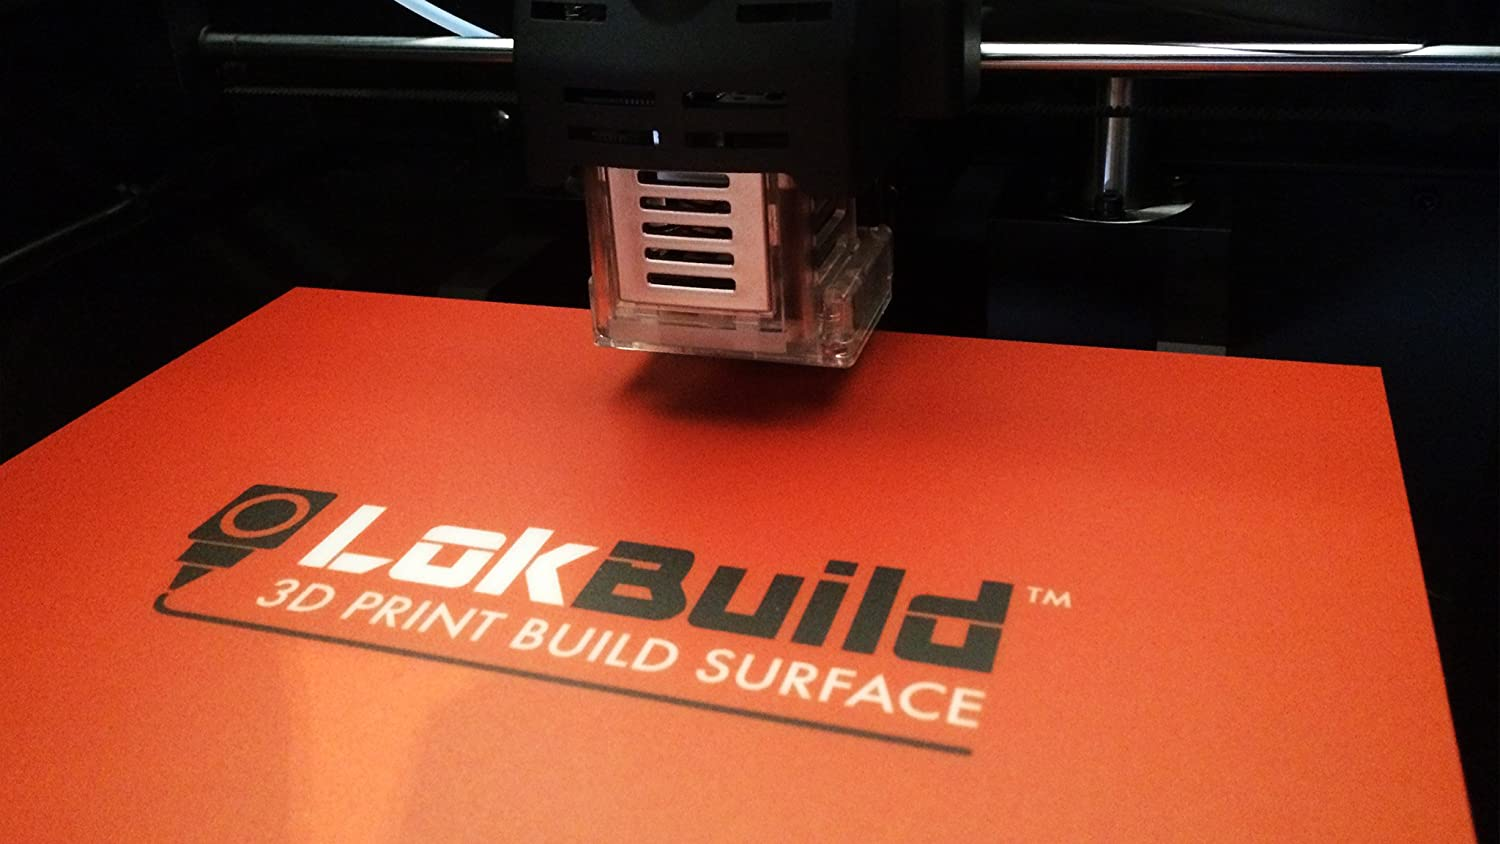 quick sticky back sheet 153x153mm clean removal of printed parts TWIN PACK 6 versatile LokBuild 3D Print Build Surface